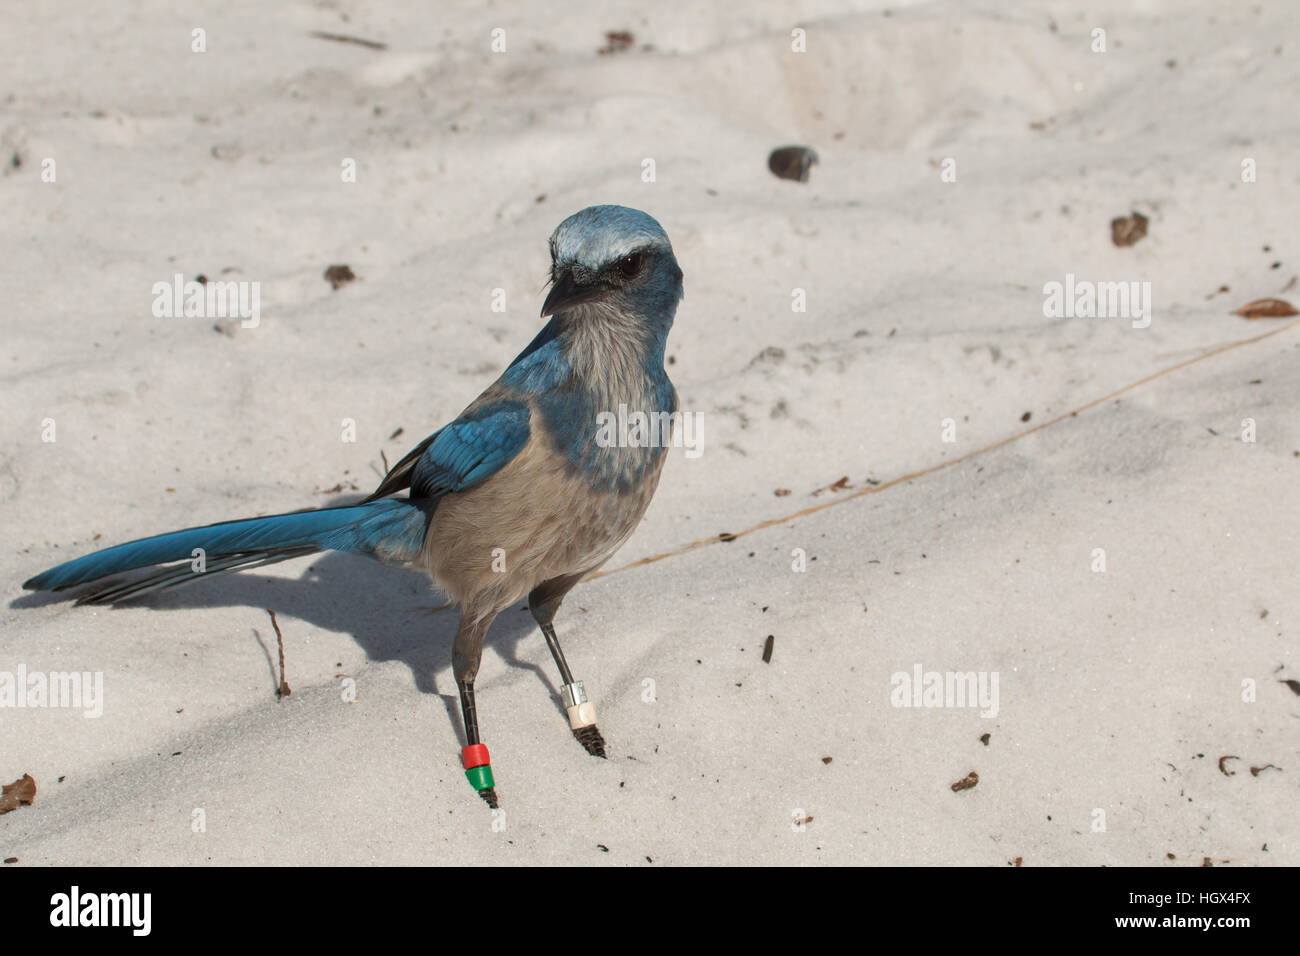 Close up of a Florida scrub jay foraging for food - Aphelocoma coerulescens Stock Photo